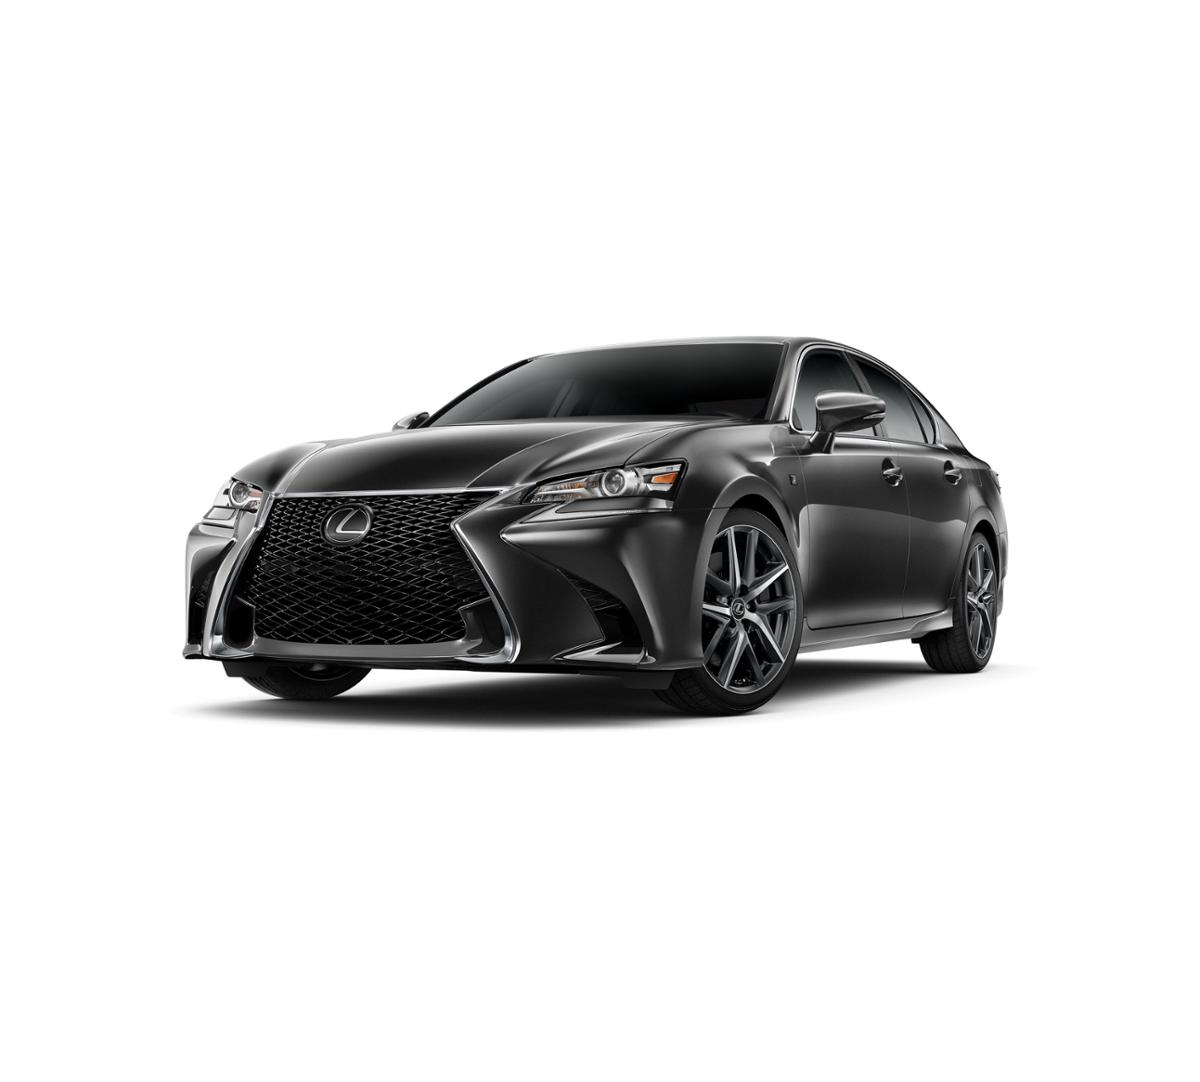 2018 Lexus GS 350 Vehicle Photo in Santa Monica, CA 90404